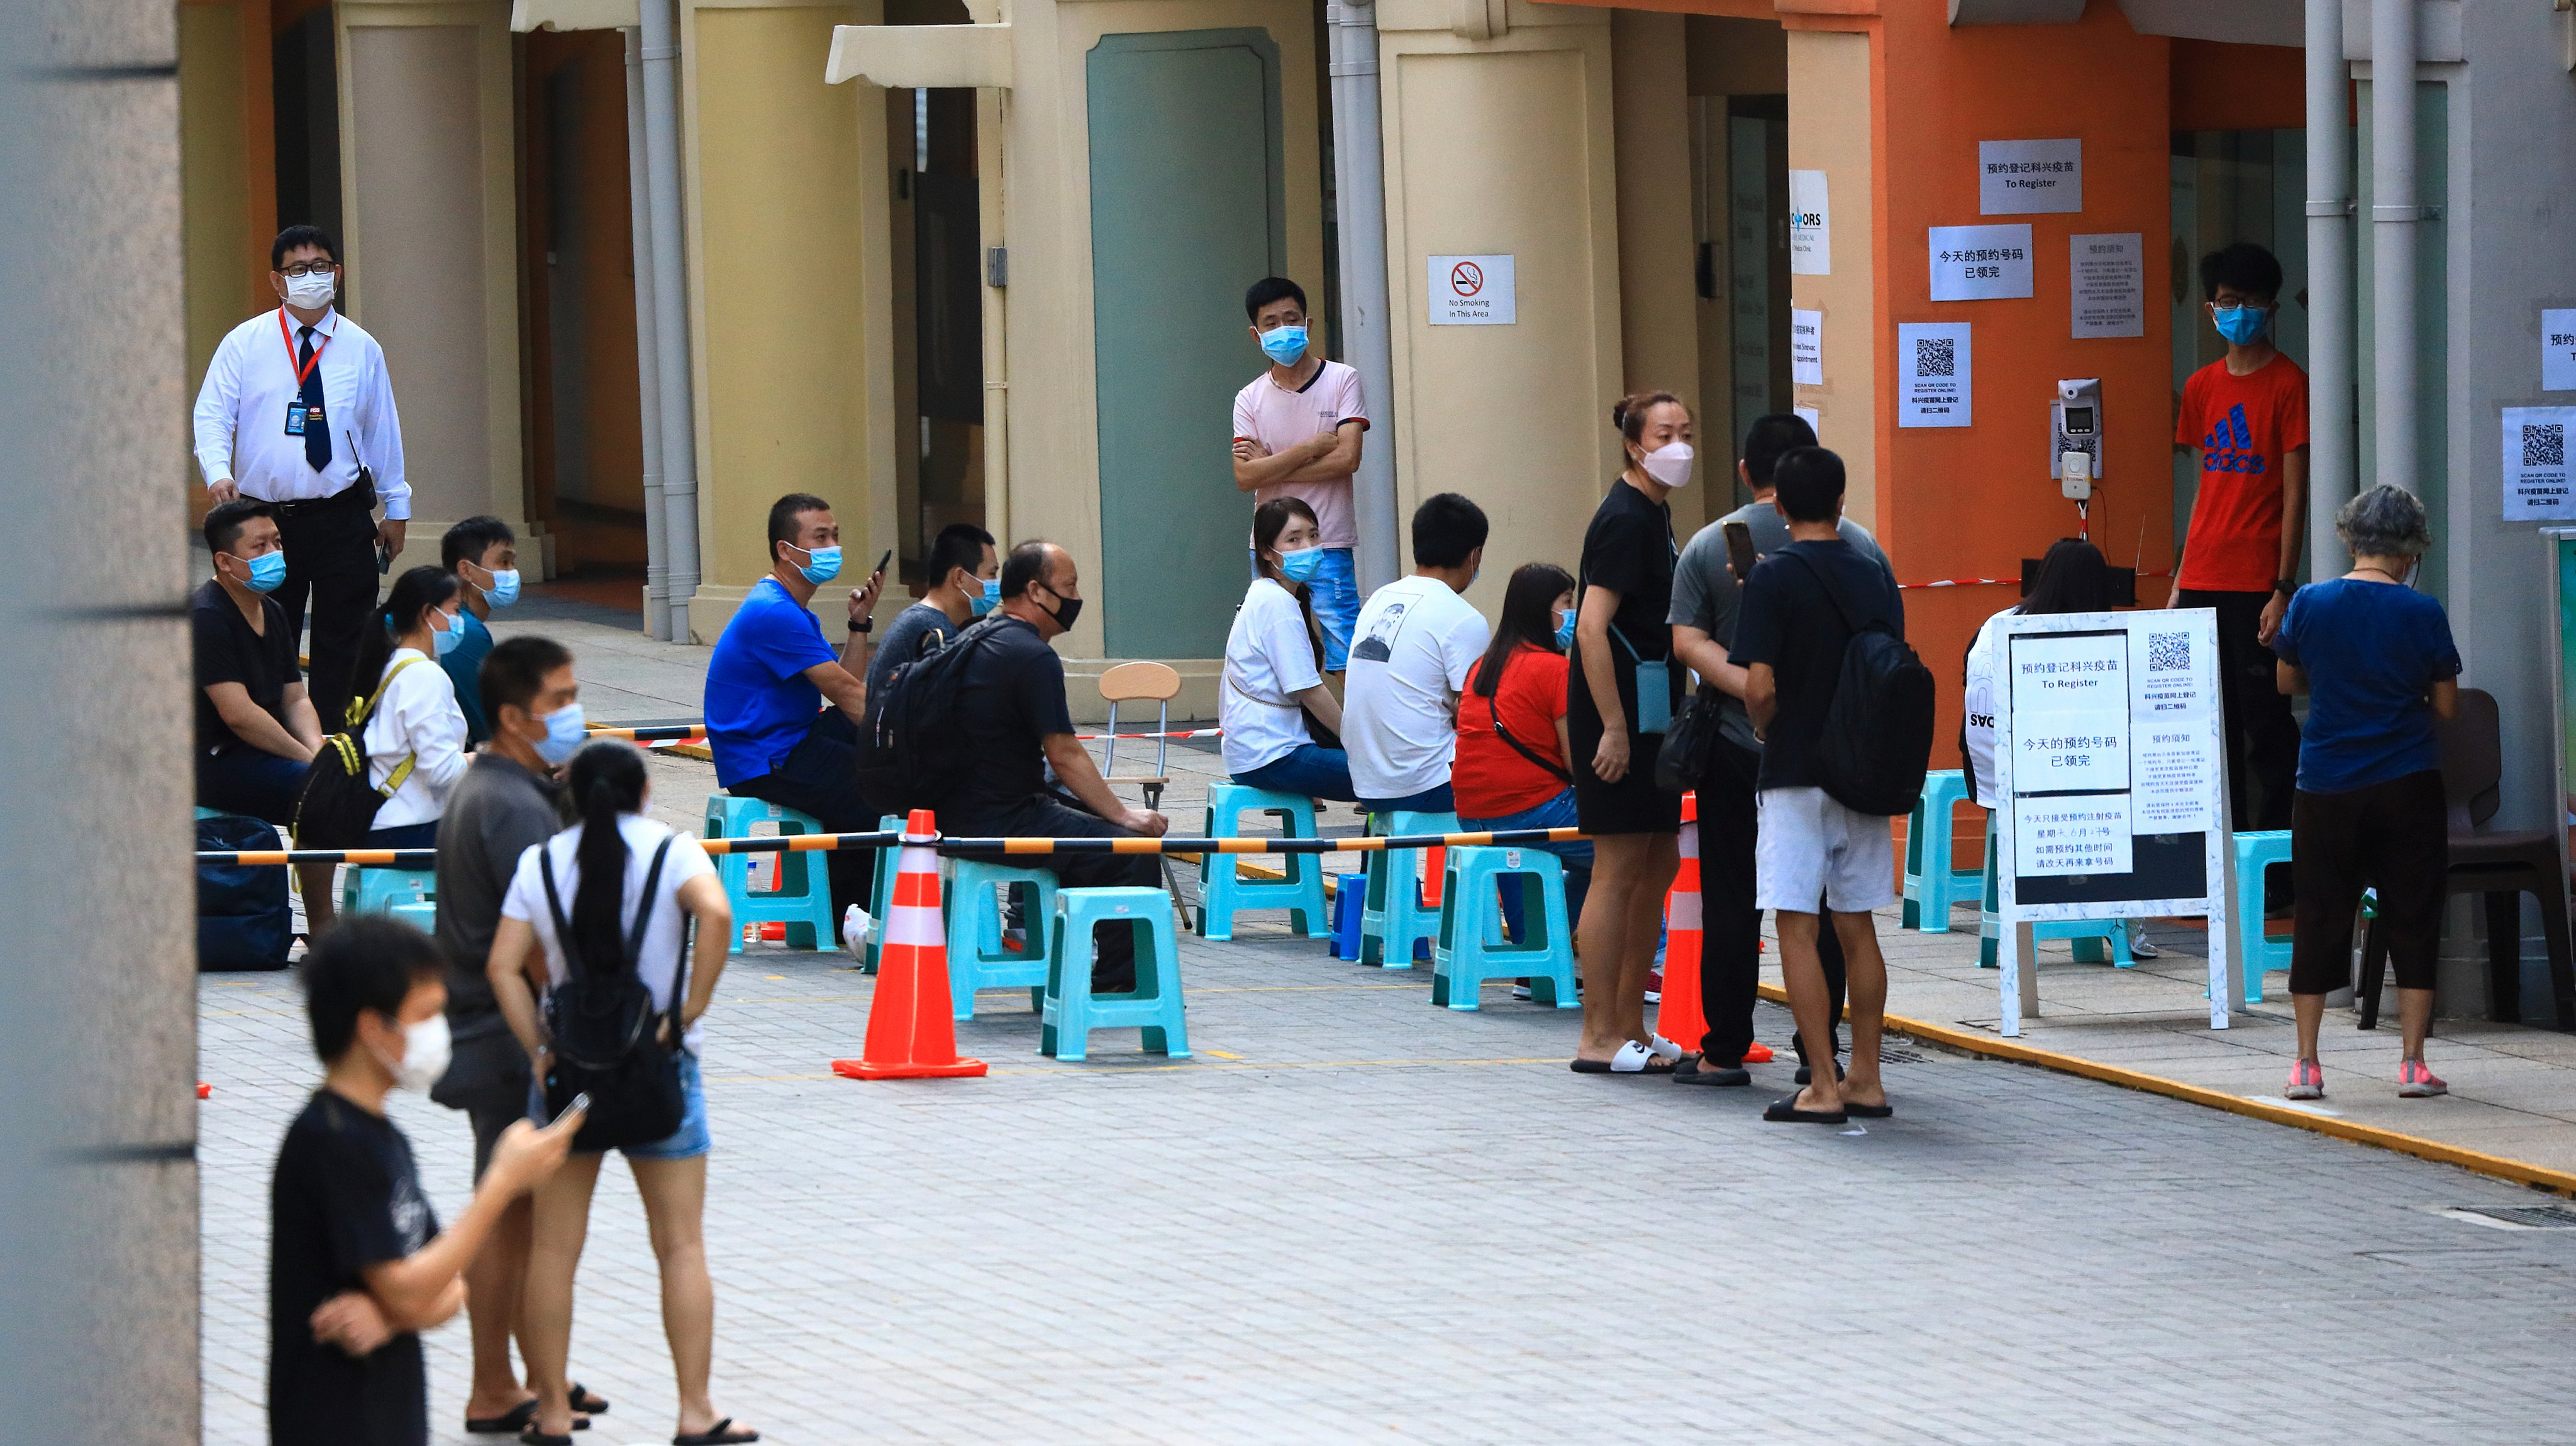 Daily Life Amid Singapore Heightened Alert For COVID-19